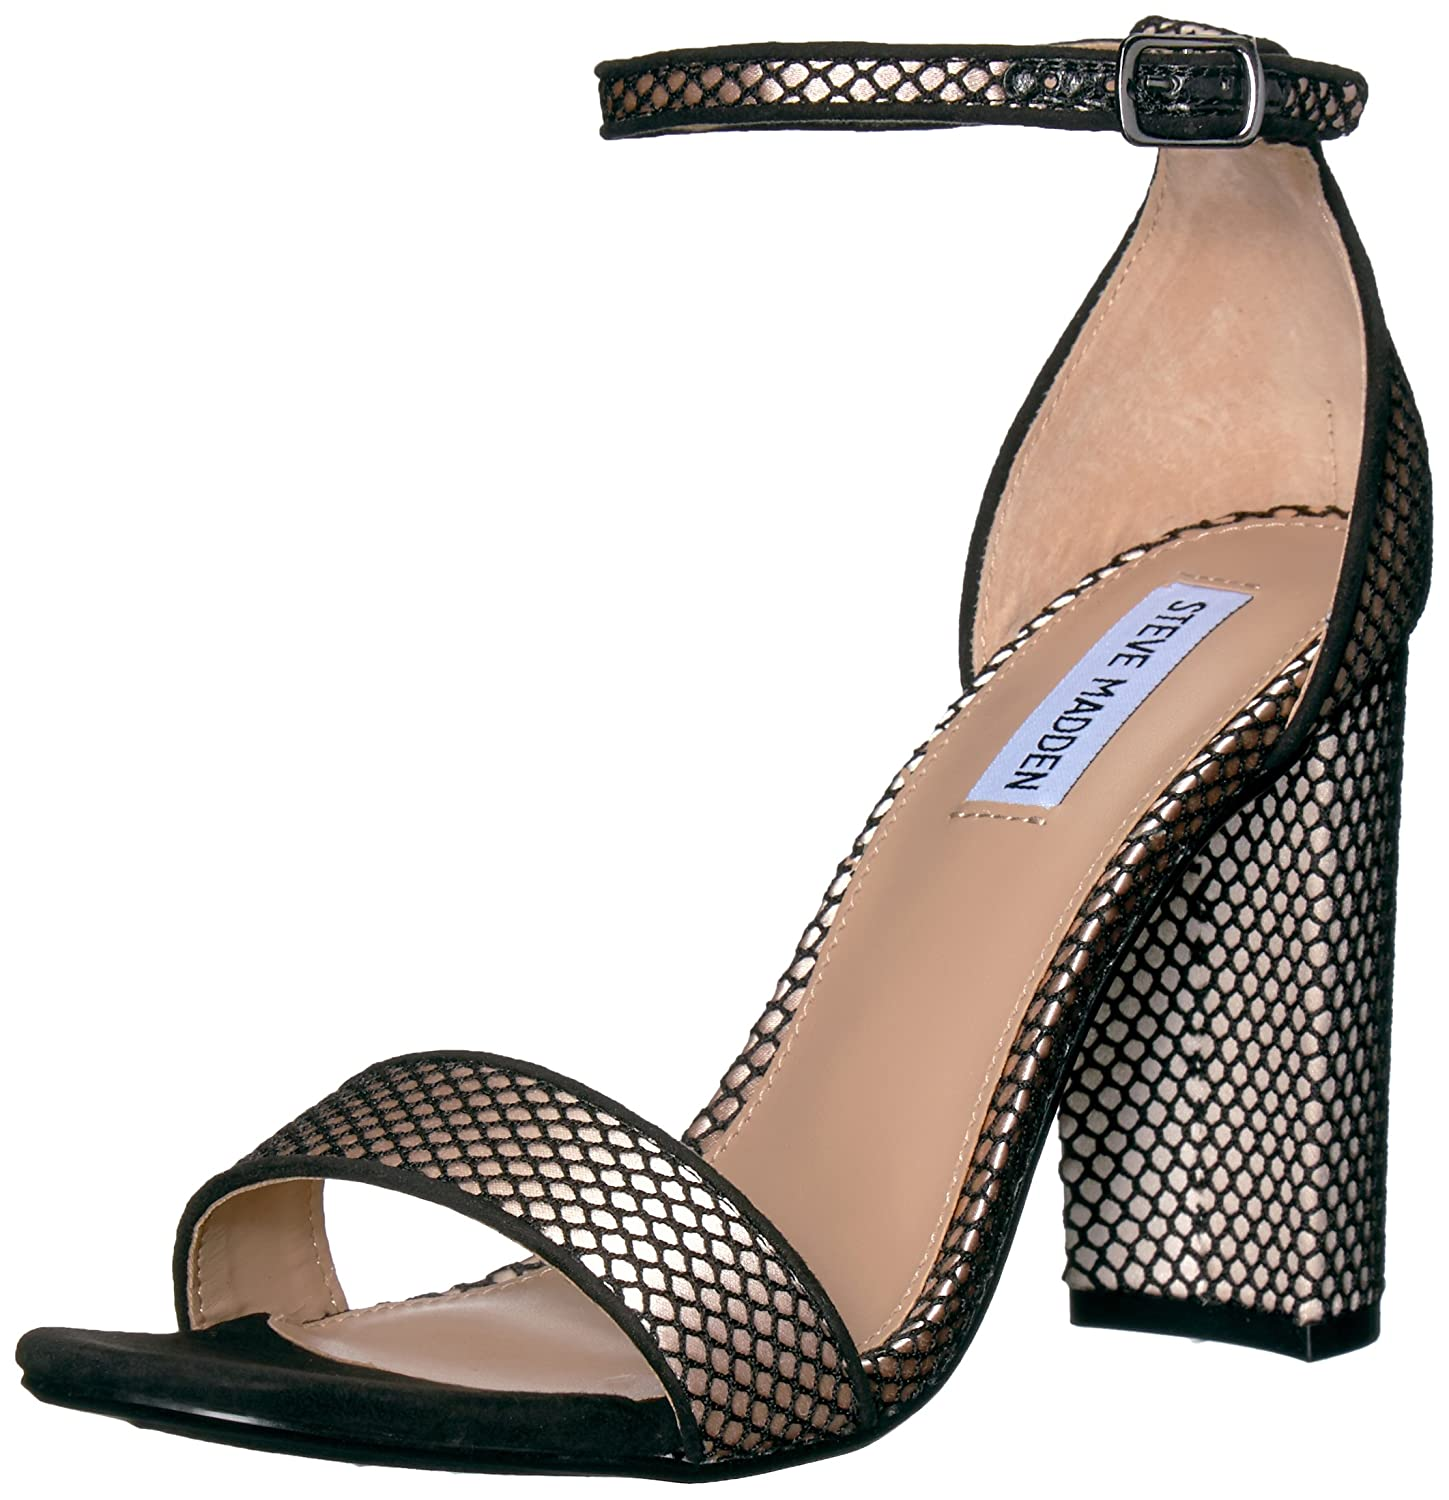 Steve Madden Women's Carrson Dress Sandal B073JV6CV1 6.5 B(M) US|Black Mesh